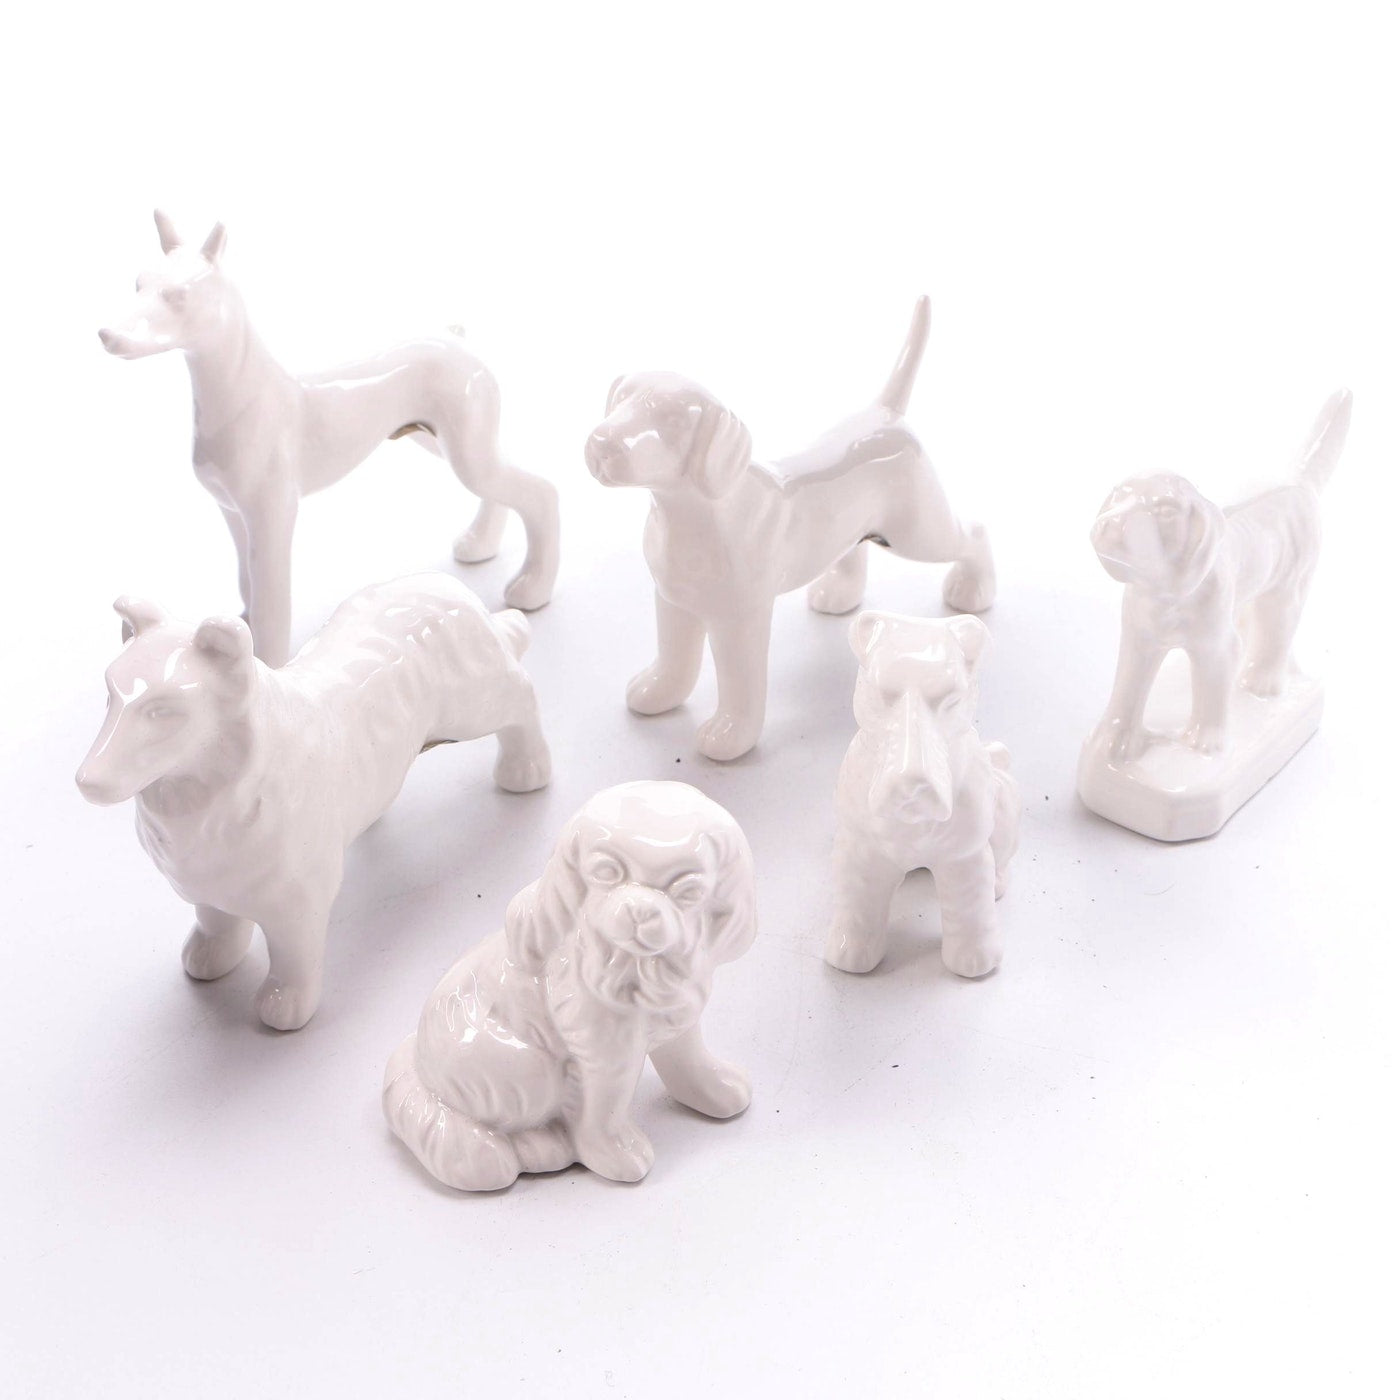 "Tozai ""Best in Show"" White Porcelain Dogs"